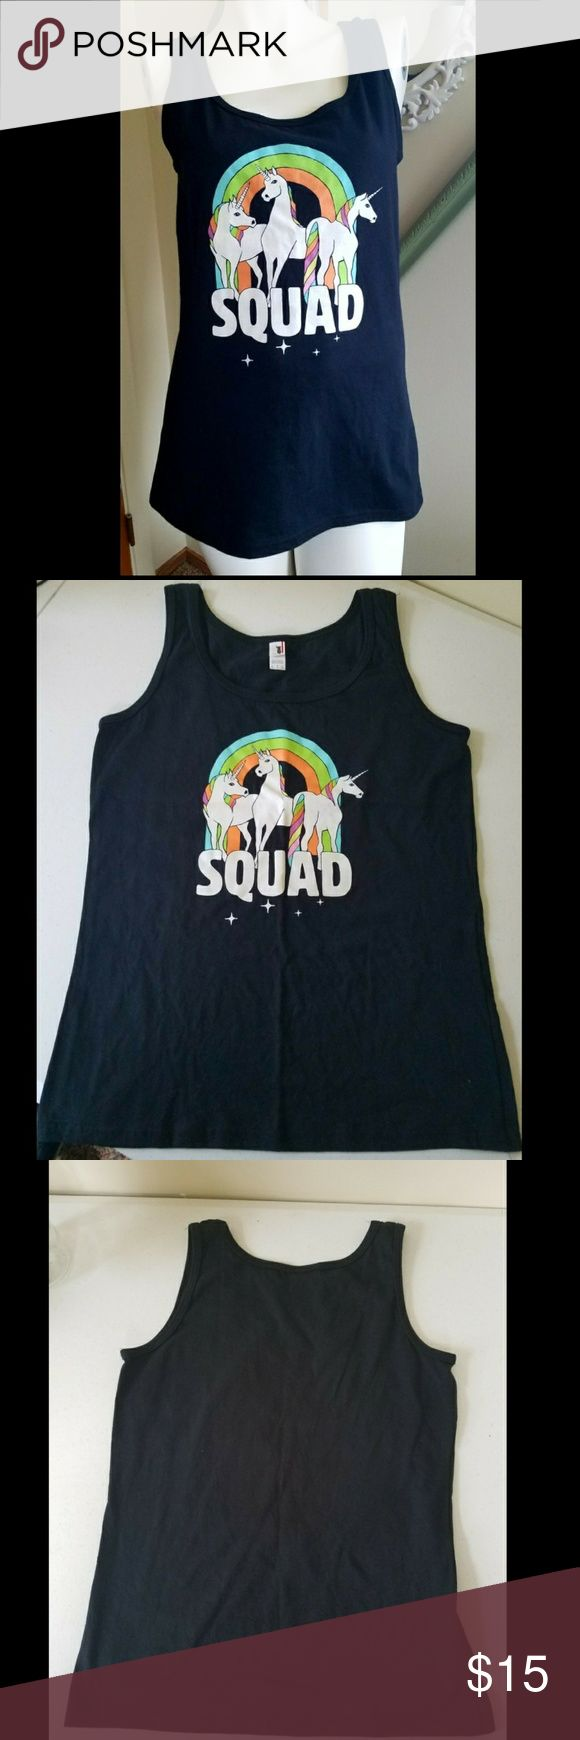 "SQUAD T-shirt What's better than a SQUAD of unicorns. Black tank top with front logo. NWOT. 100% cotton. Preshrunk fabric. Semi fitted.   Measurements  Length 26""  Width 17""  Strap width 2""  Get an additional 30% off when purchasing 3 or more items using the bundle feature. Always willing to negotiate. Make an offer. Anvil Tops Tank Tops"